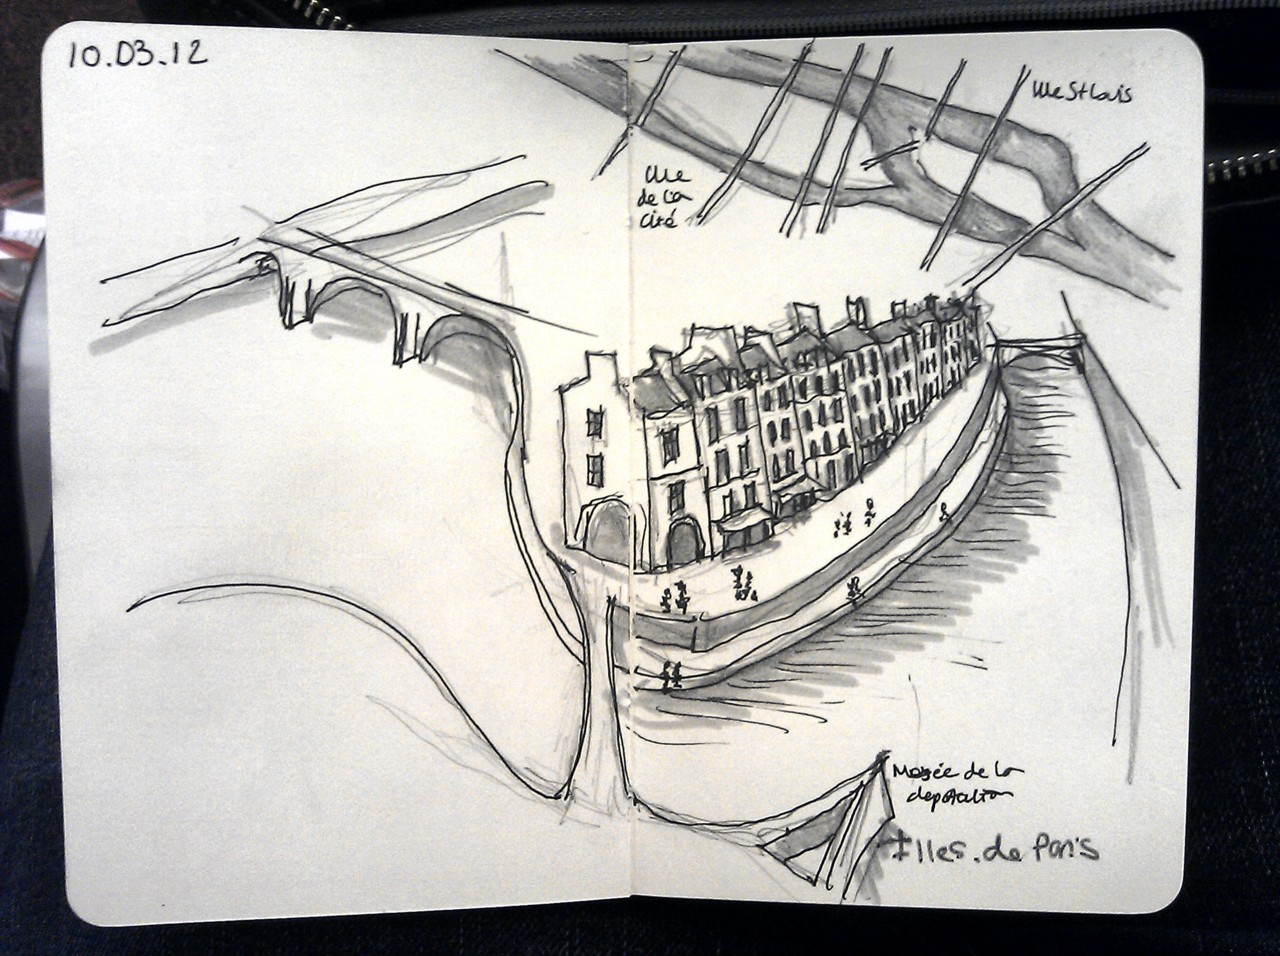 365 days later … day 39 … Illes de paris (if I was ever lucky enough to live in Paris, this is where I'd quite like to be)